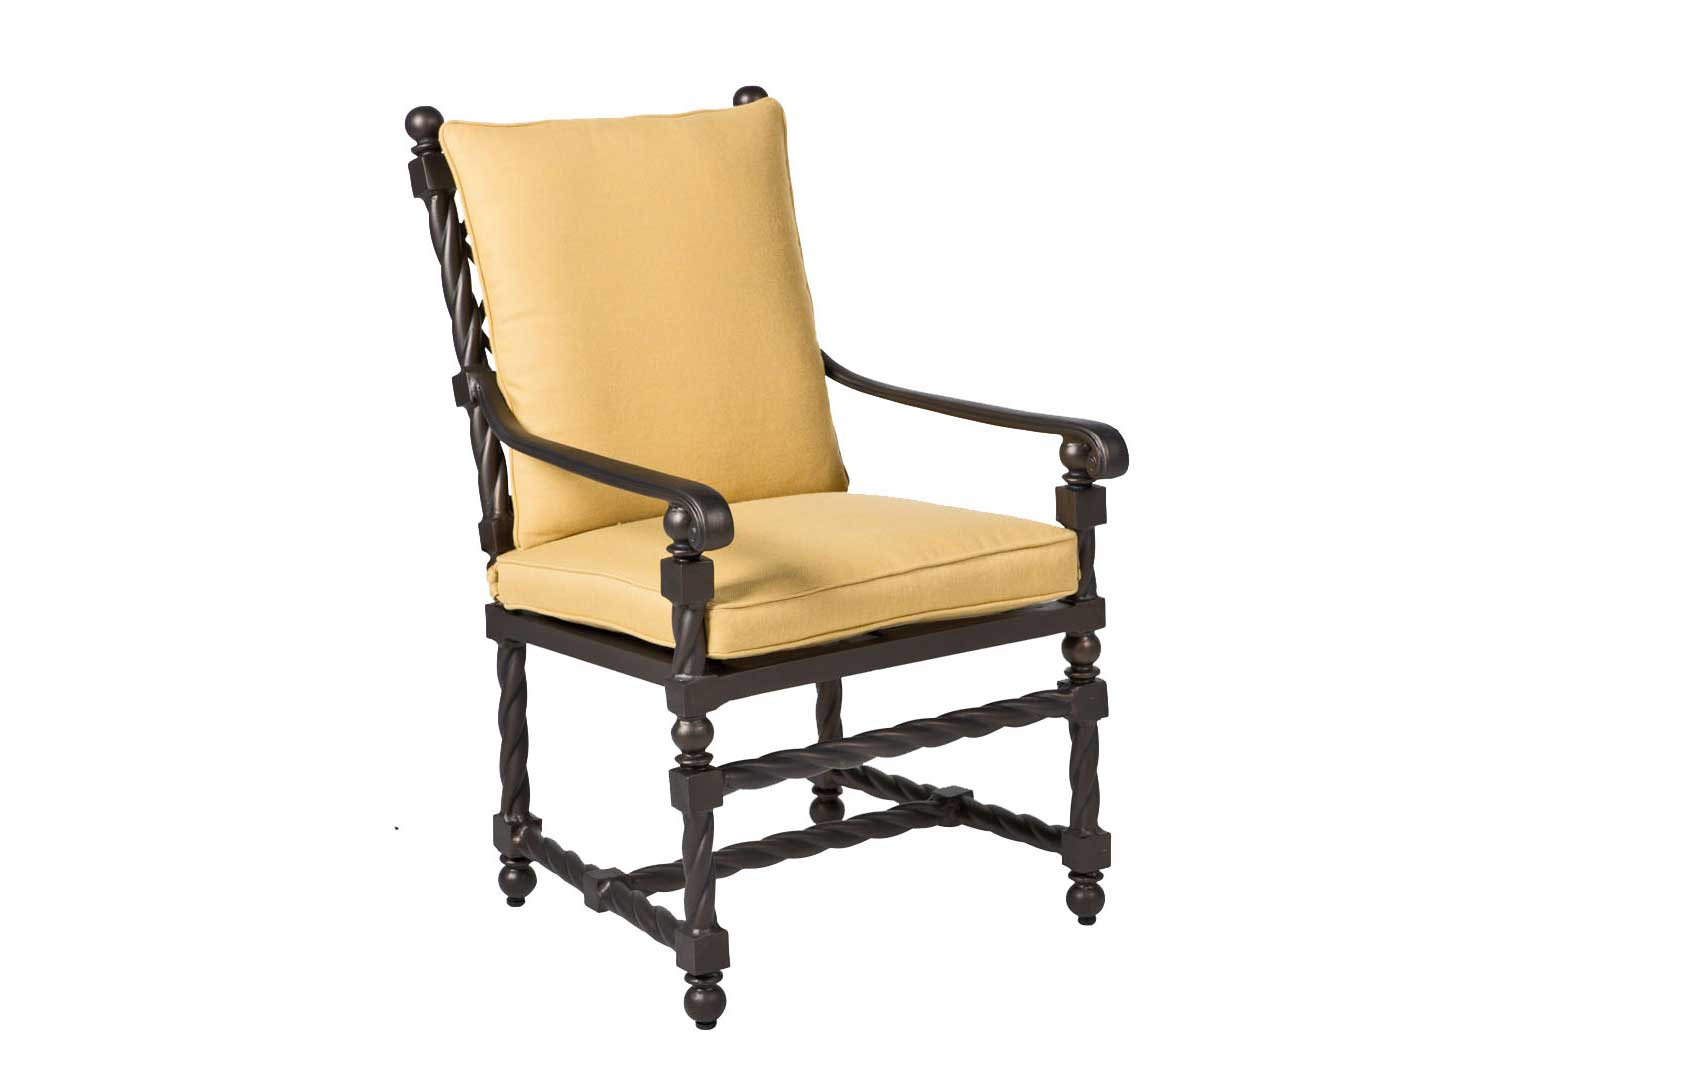 Landgrave Bretain cast aluminum chairs with arms